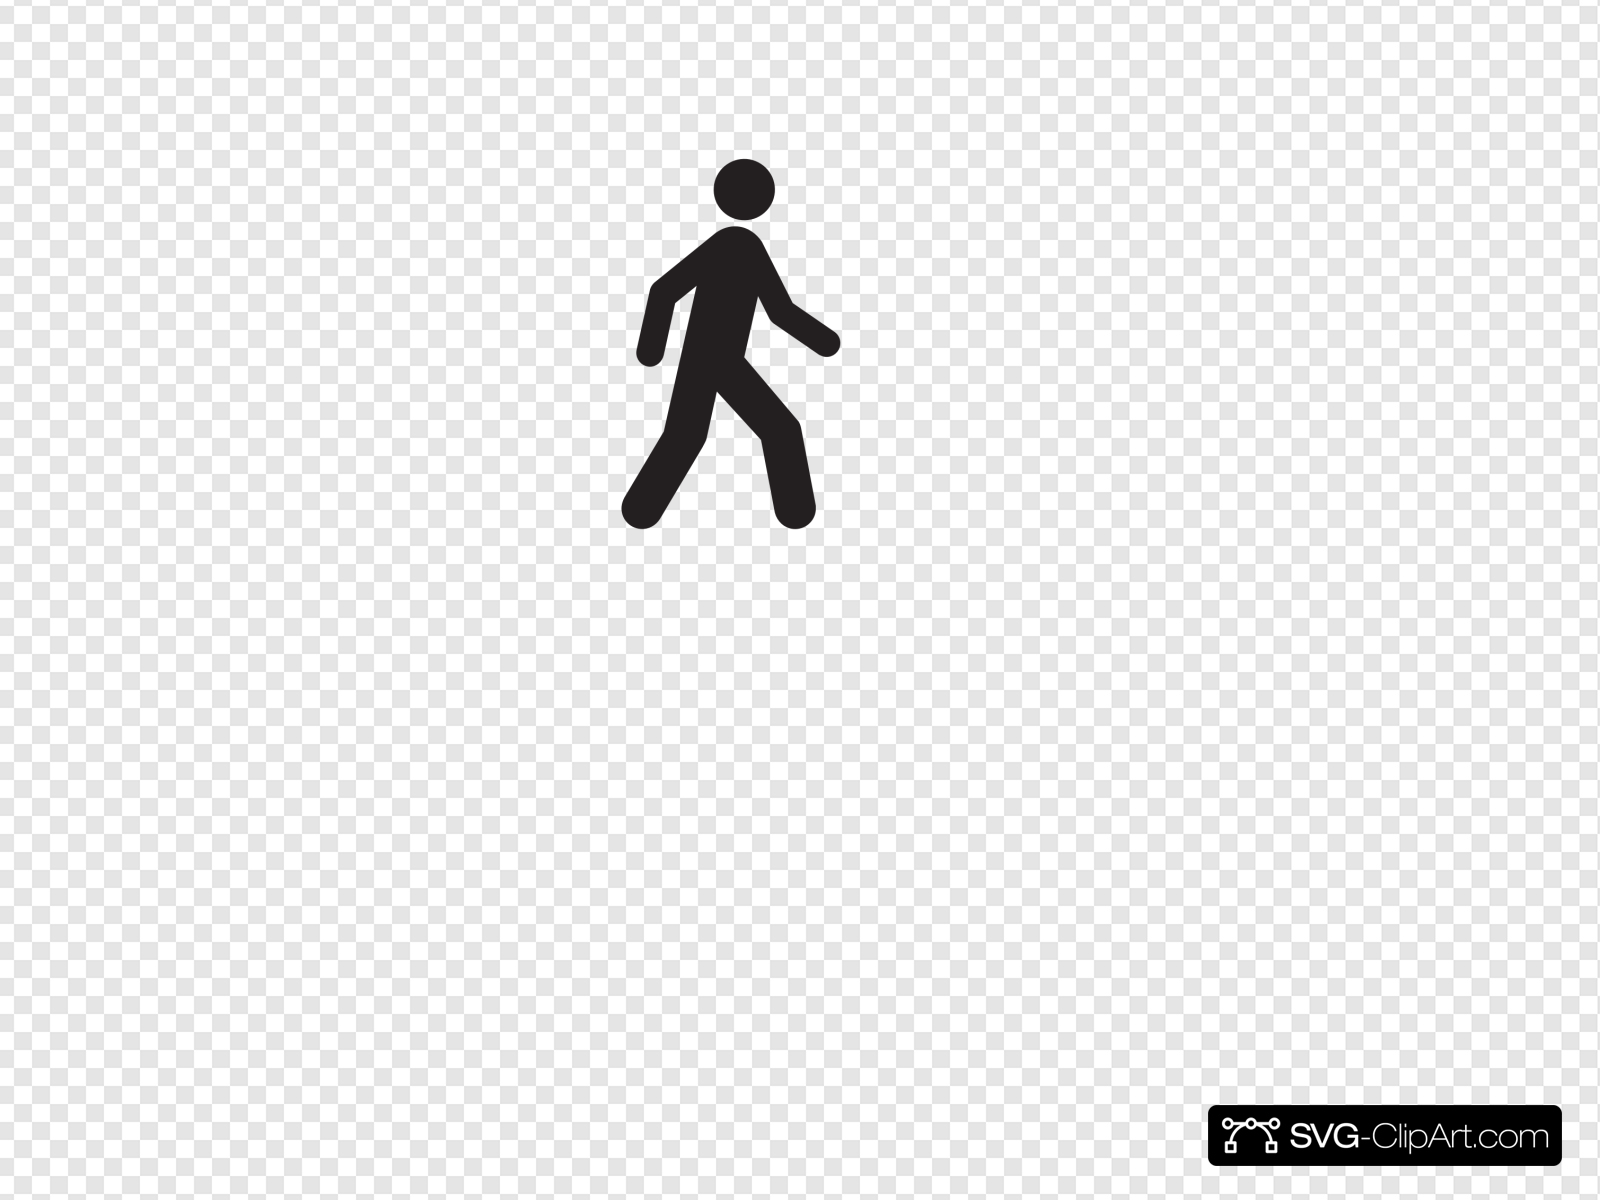 Walking Icon Clip art, Icon and SVG.